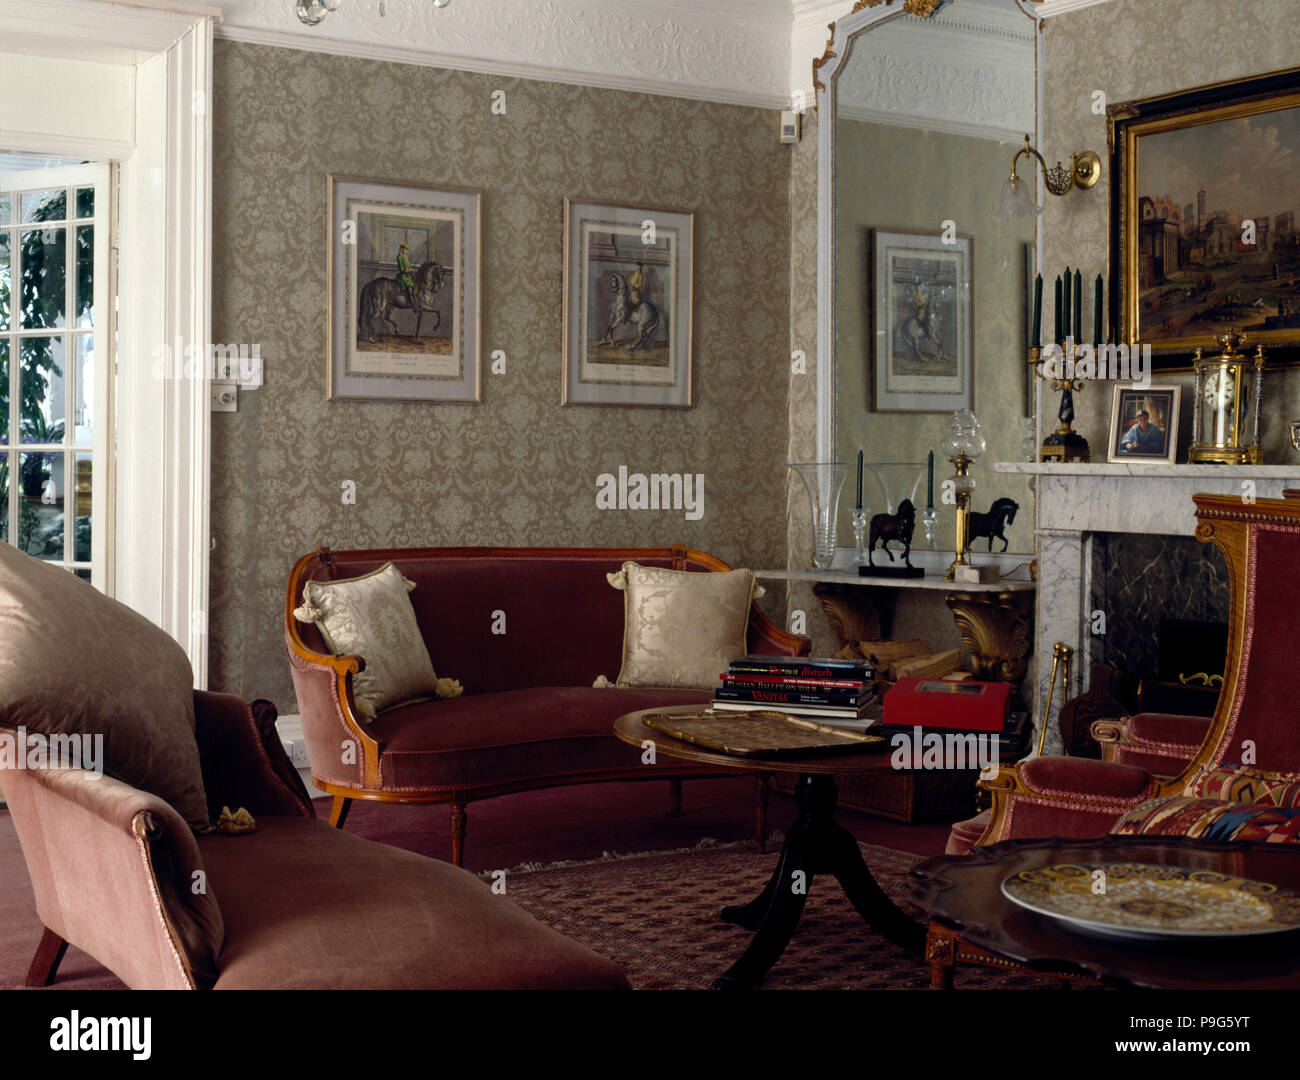 Velvet upholstered sofas in an old fashioned living room with pale grey wallpaper